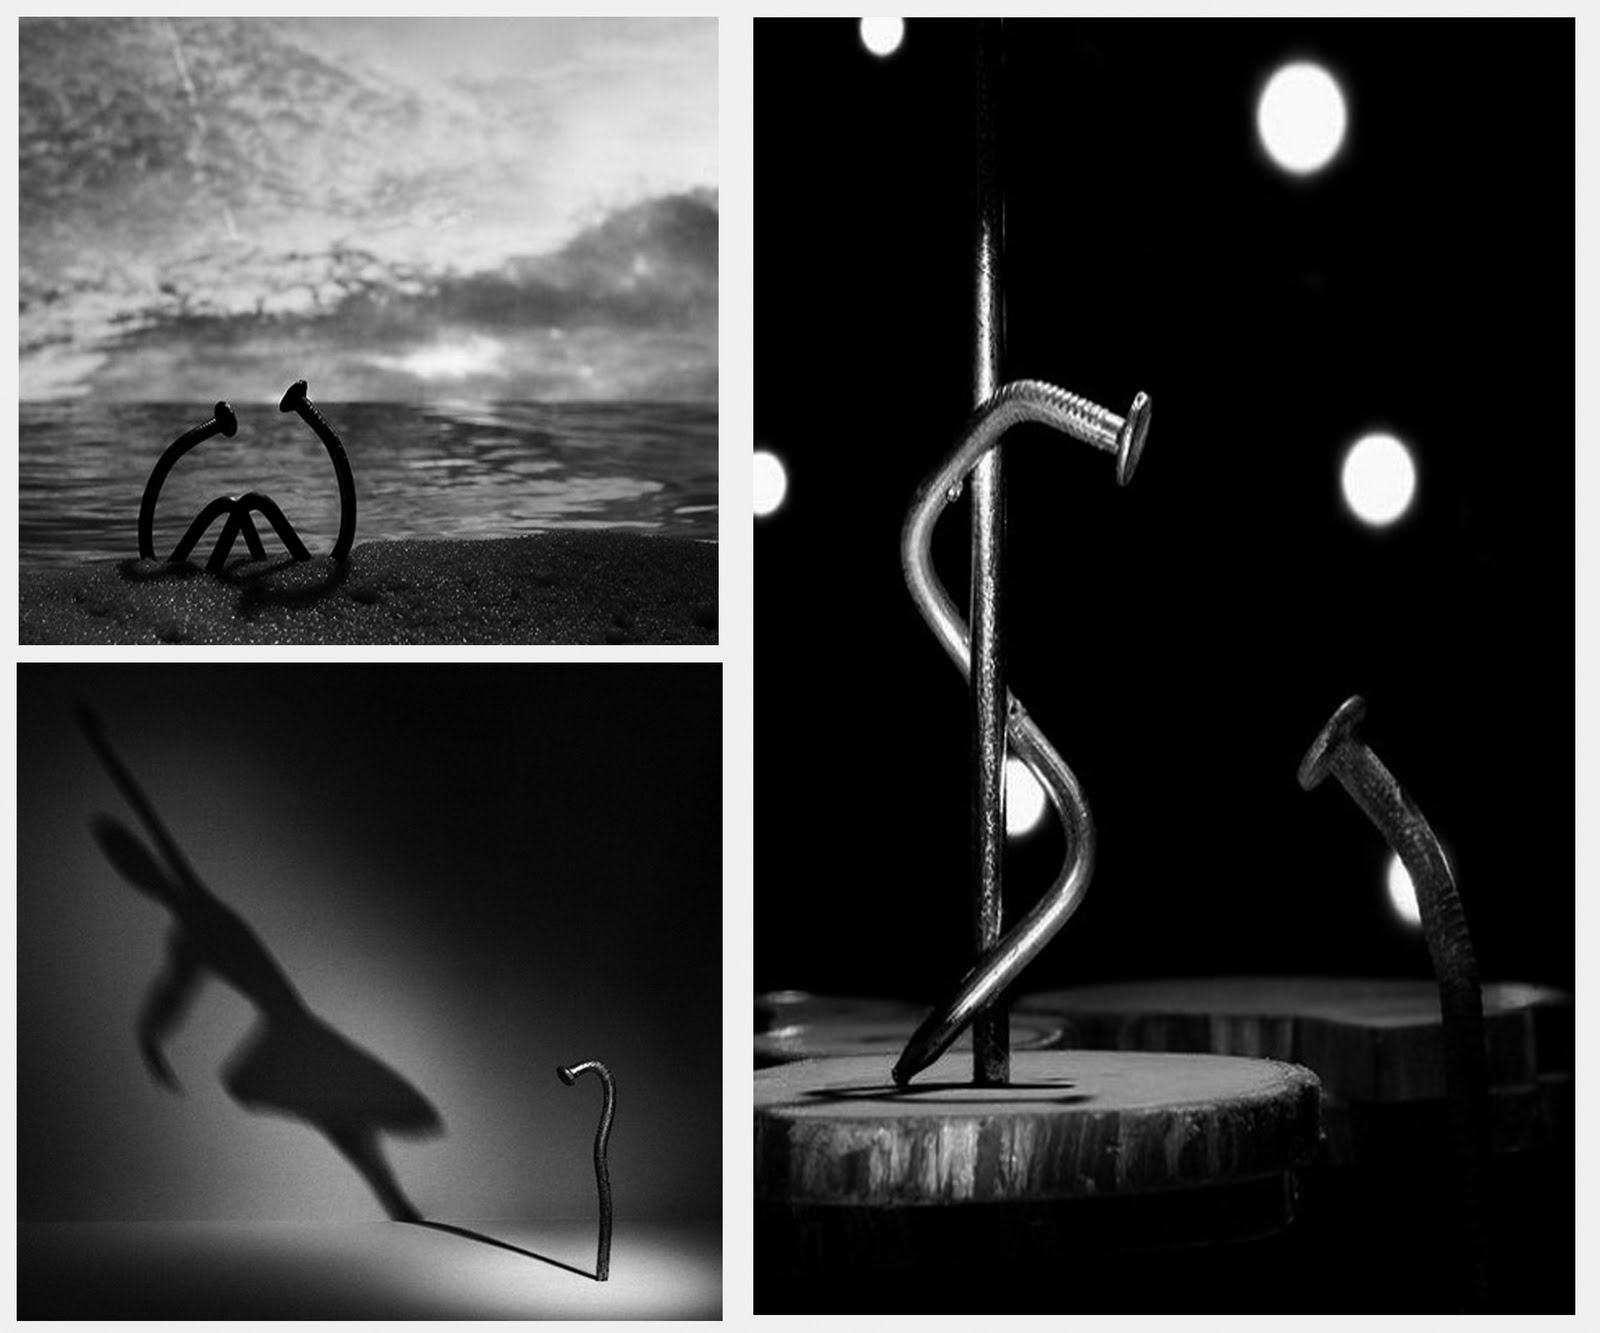 Albus: The photo series challenging established standards